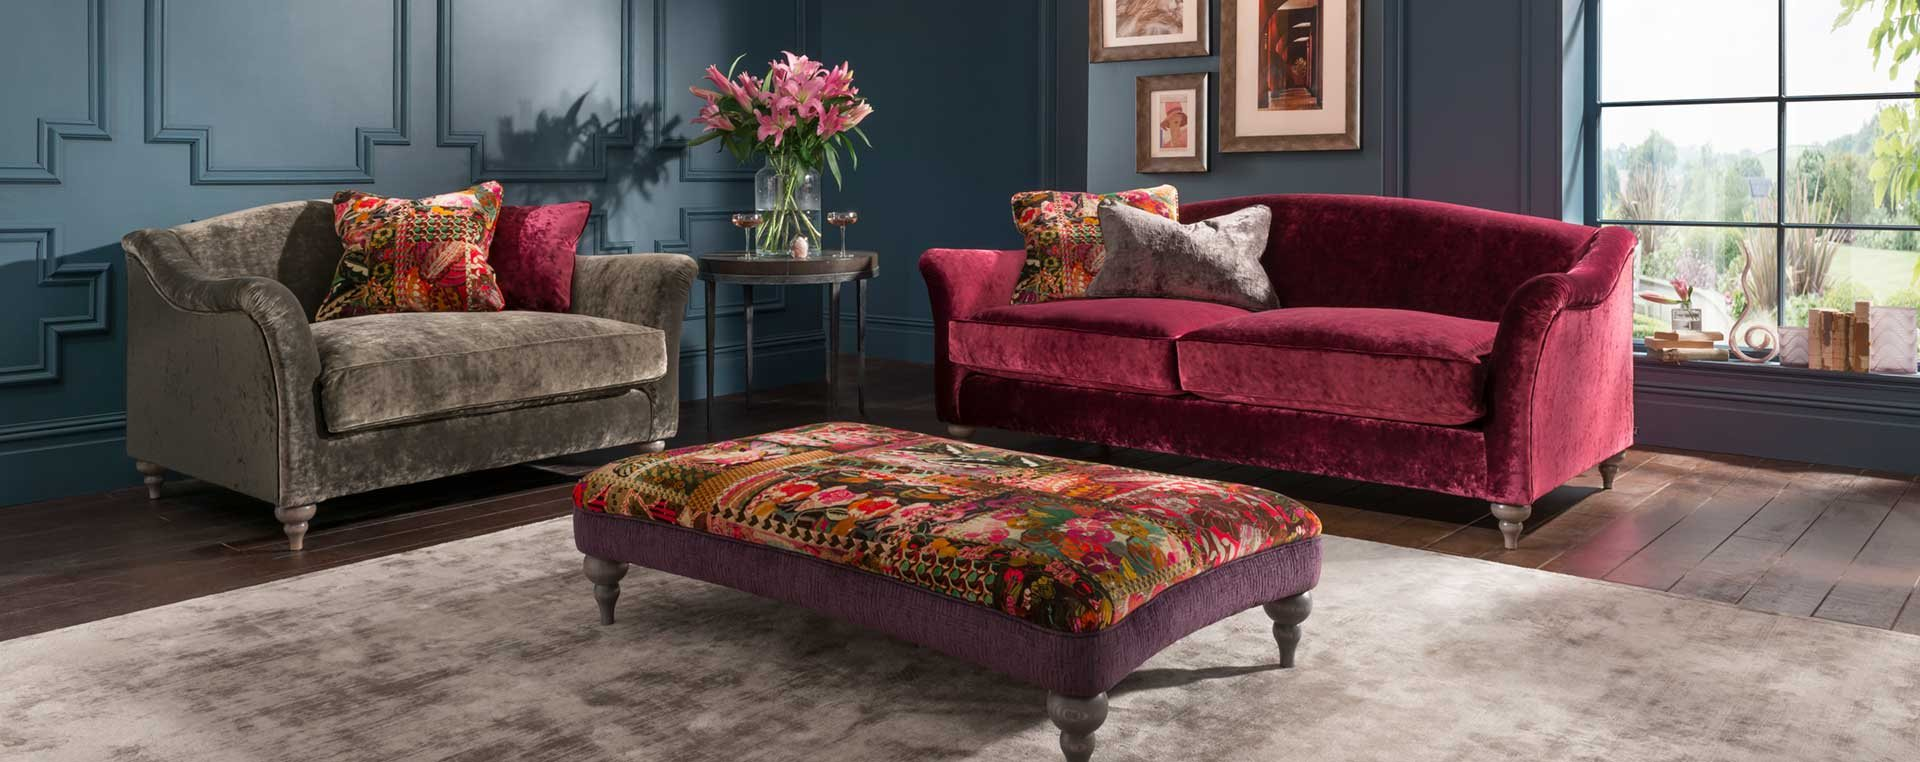 Lamour - Sofas & Chairs